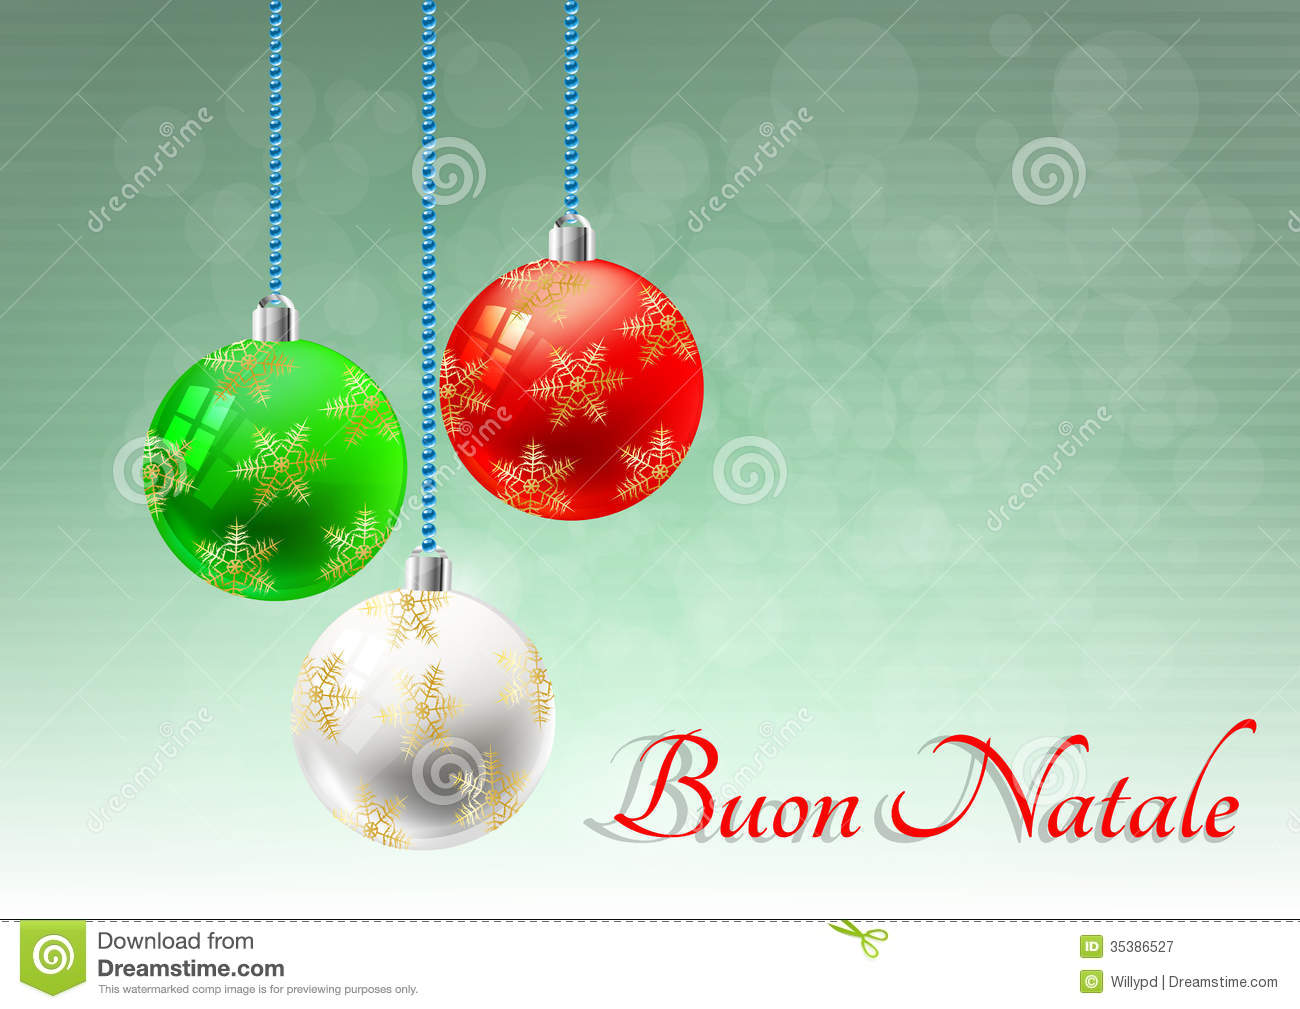 How To Say Merry Christmas In Italian.How To Say Christmas Eve In Italian How To Cook The Feast